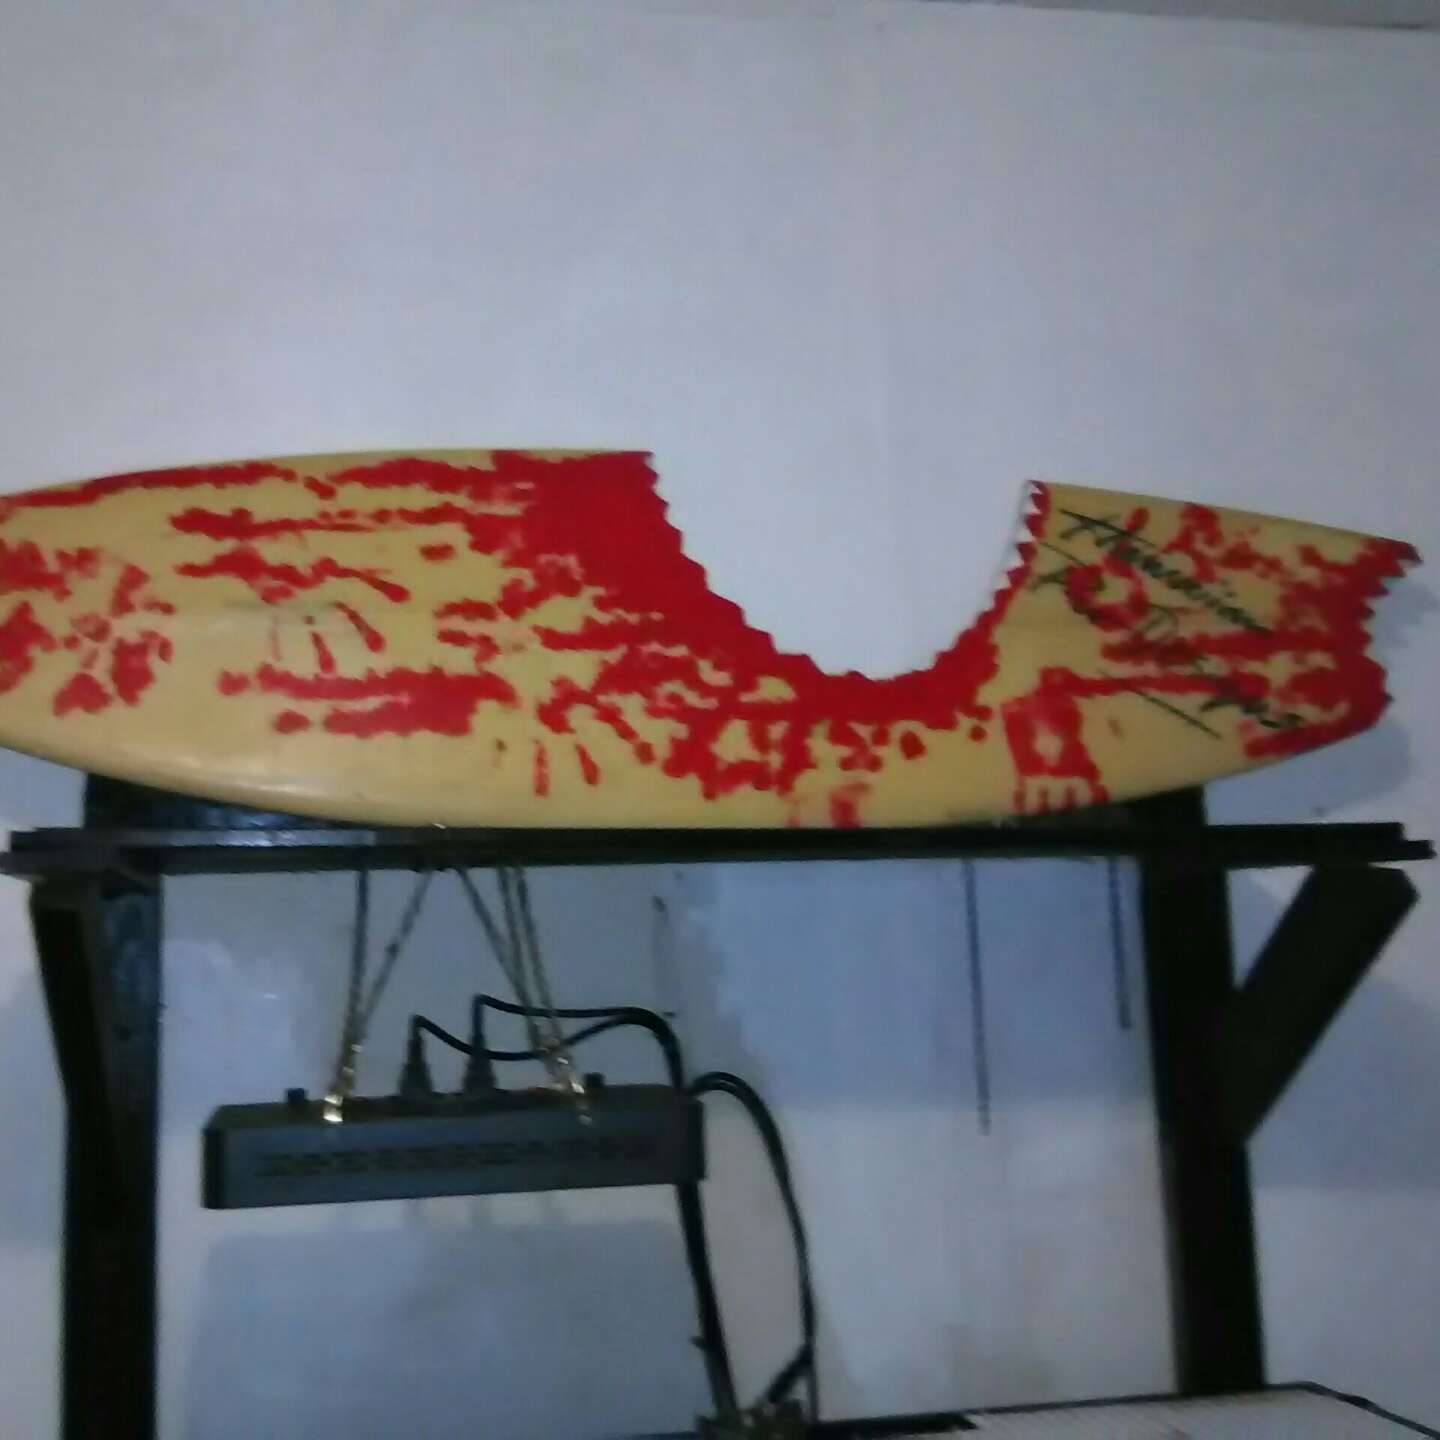 Photo Looking for any free/unwanted surfboards. NOT FOR SALE